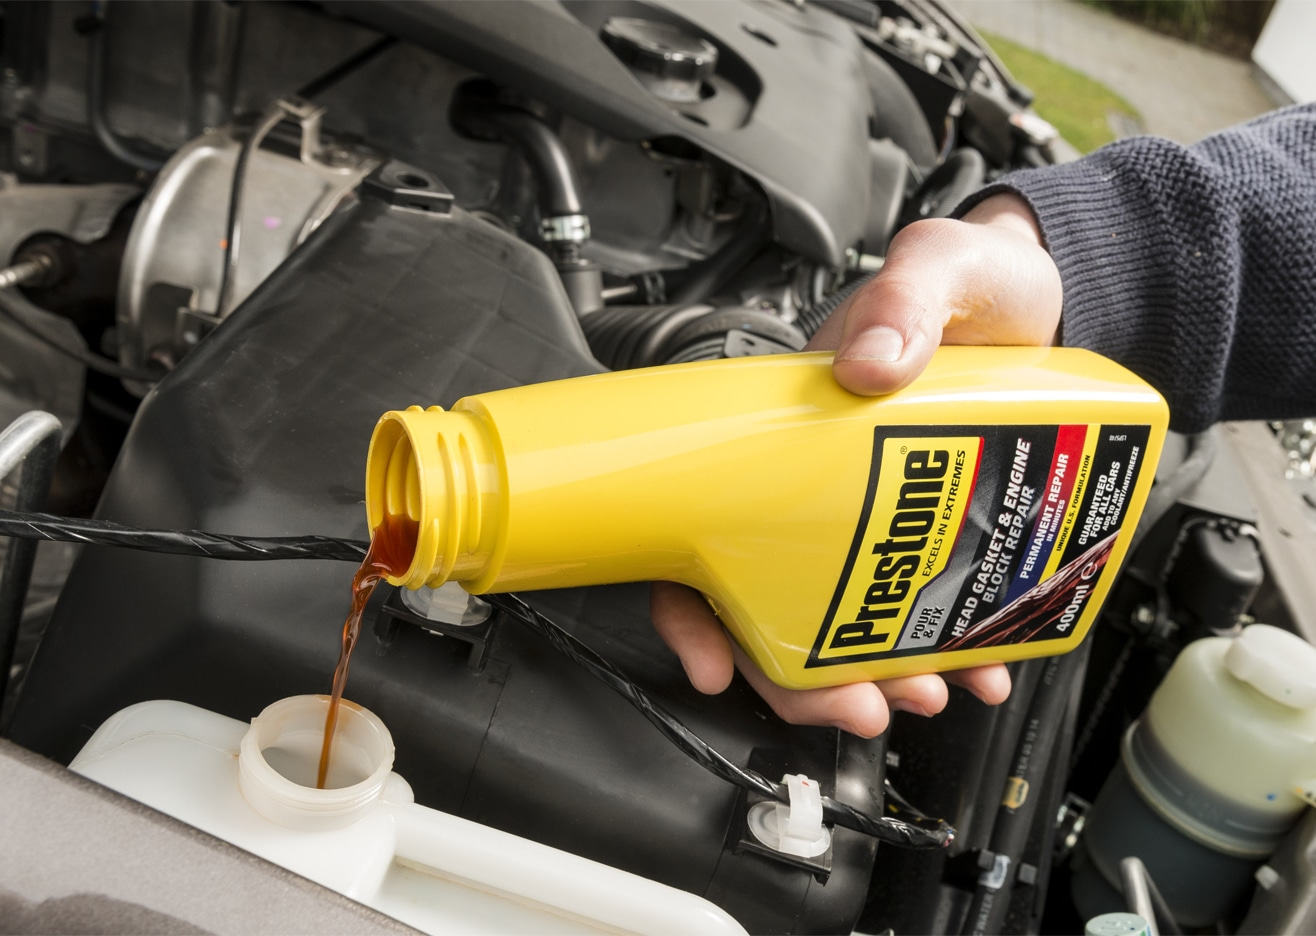 How To Put Antifreeze In Car >> Putting Prestone Head Gasket & Engine Block Repair to the Test